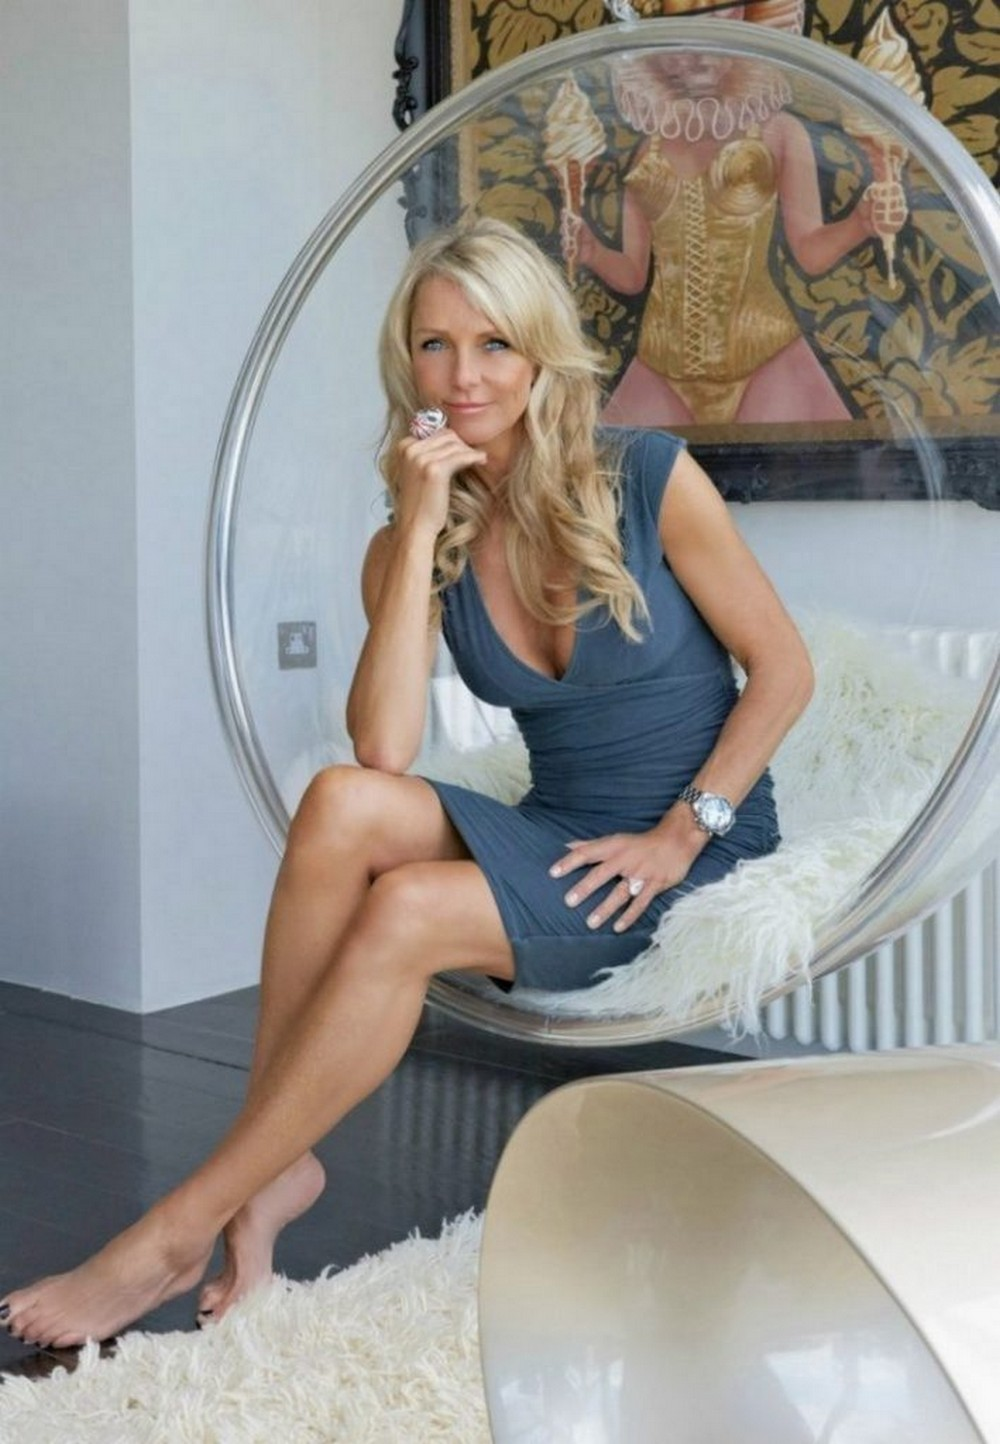 Celia Sawyer Is A Luxury Design Symbol In London And The World! celia sawyer Celia Sawyer Is A Luxury Design Symbol In London And The World! Celia Sawyer Is A Luxury Design Symbol In London And The World 5